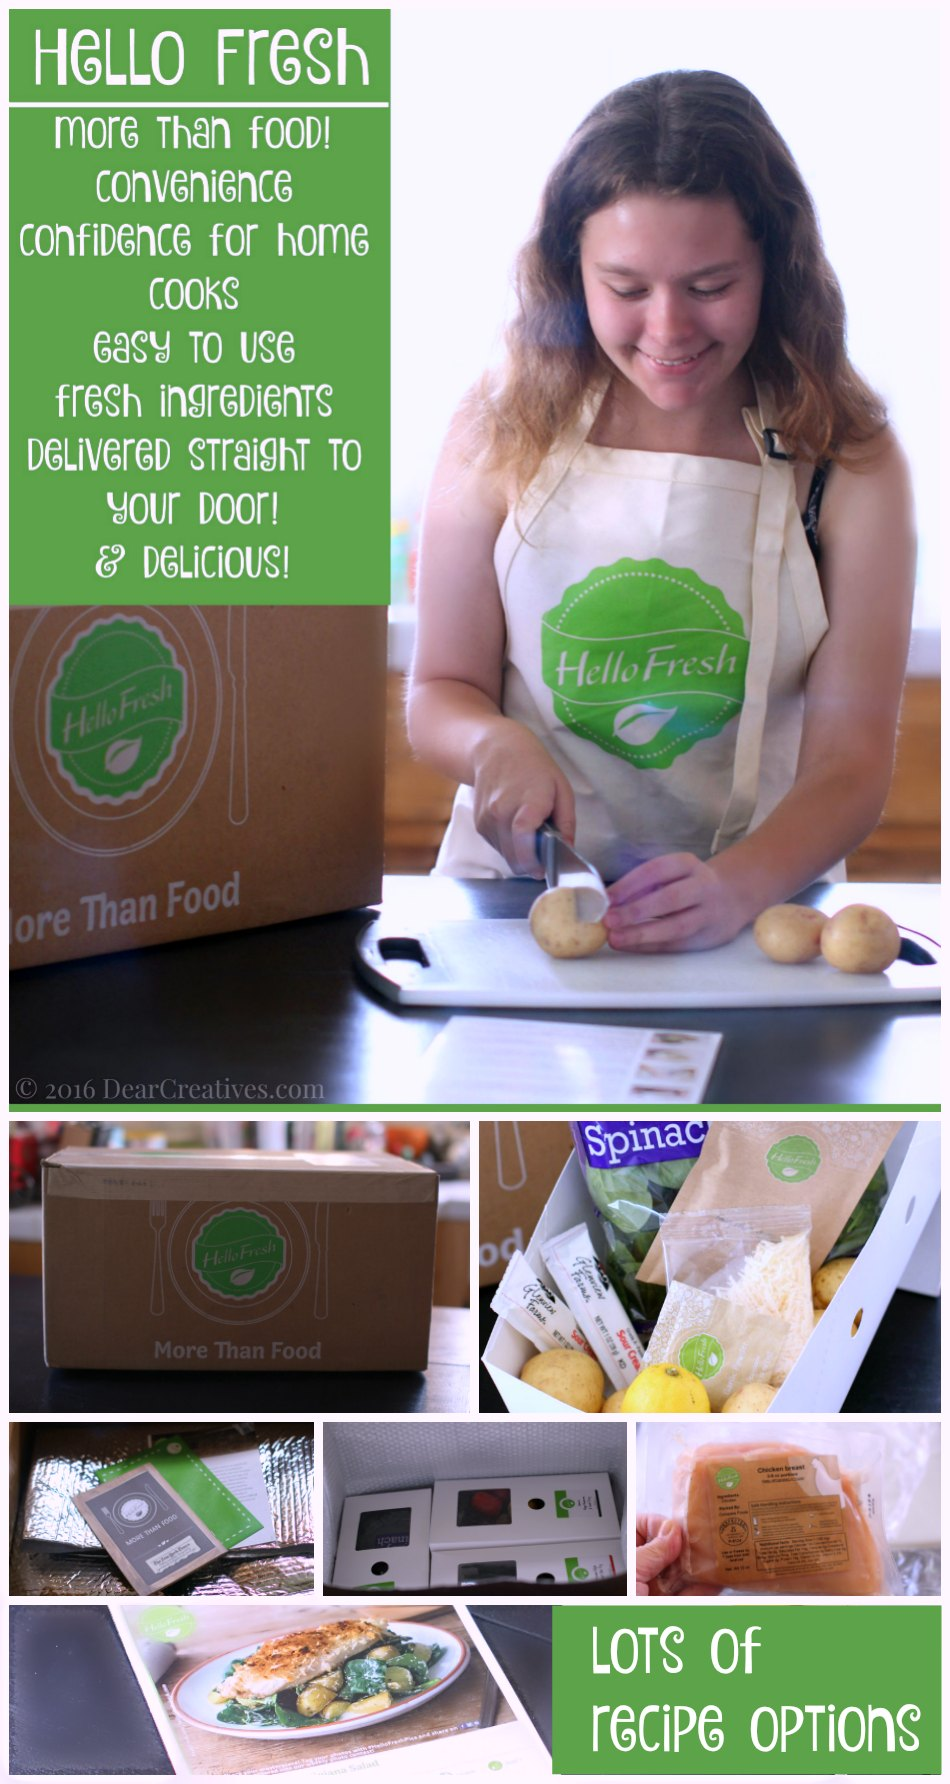 Cooking Recipes Recipe Kits Hello Fresh Meal Kit Delivery Meal Plans